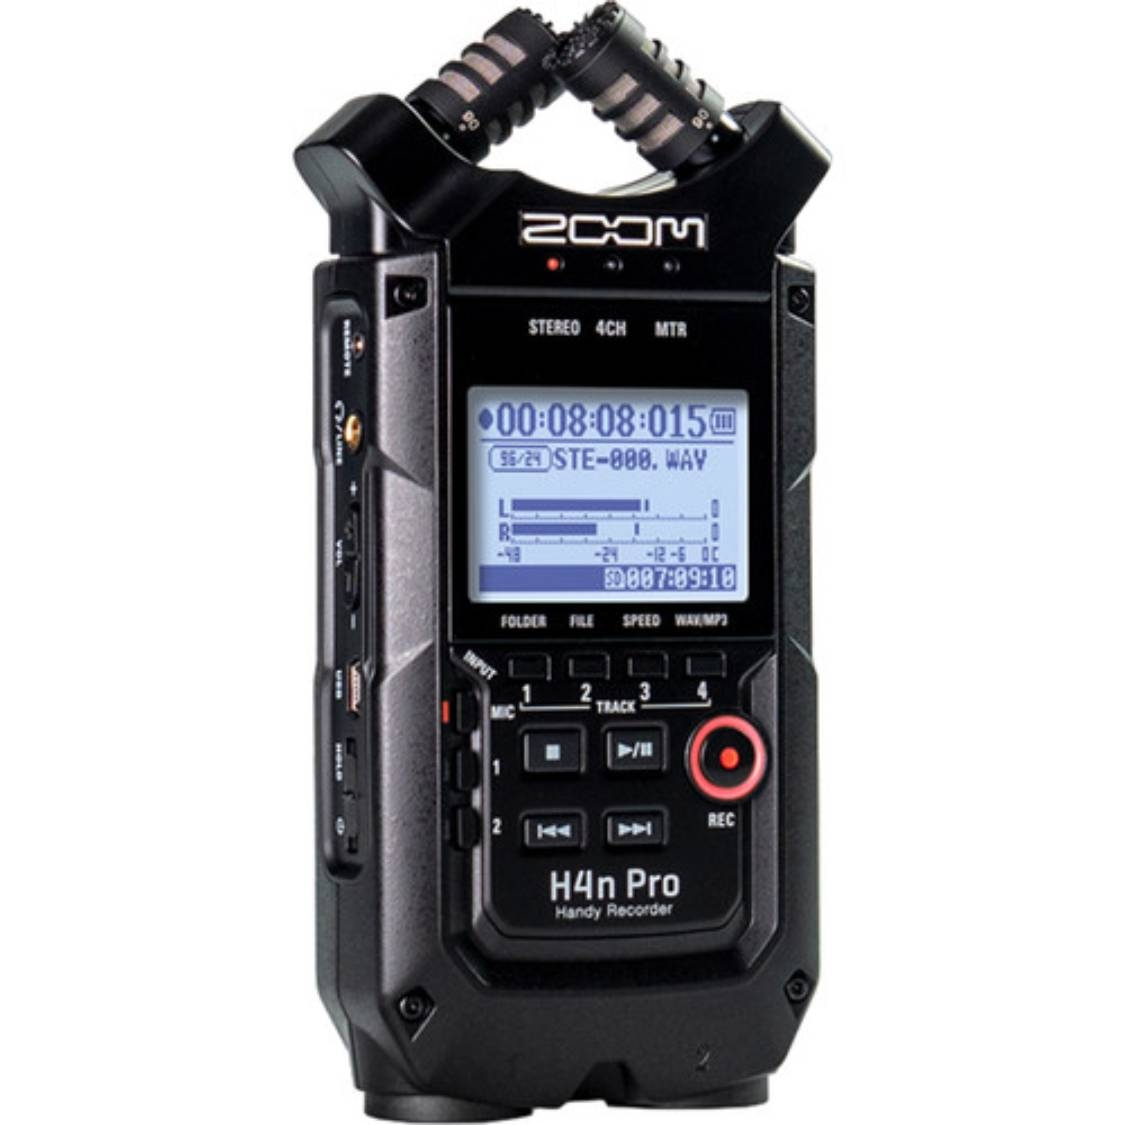 Zoom H4N Pro Handy Recorder (All Black)